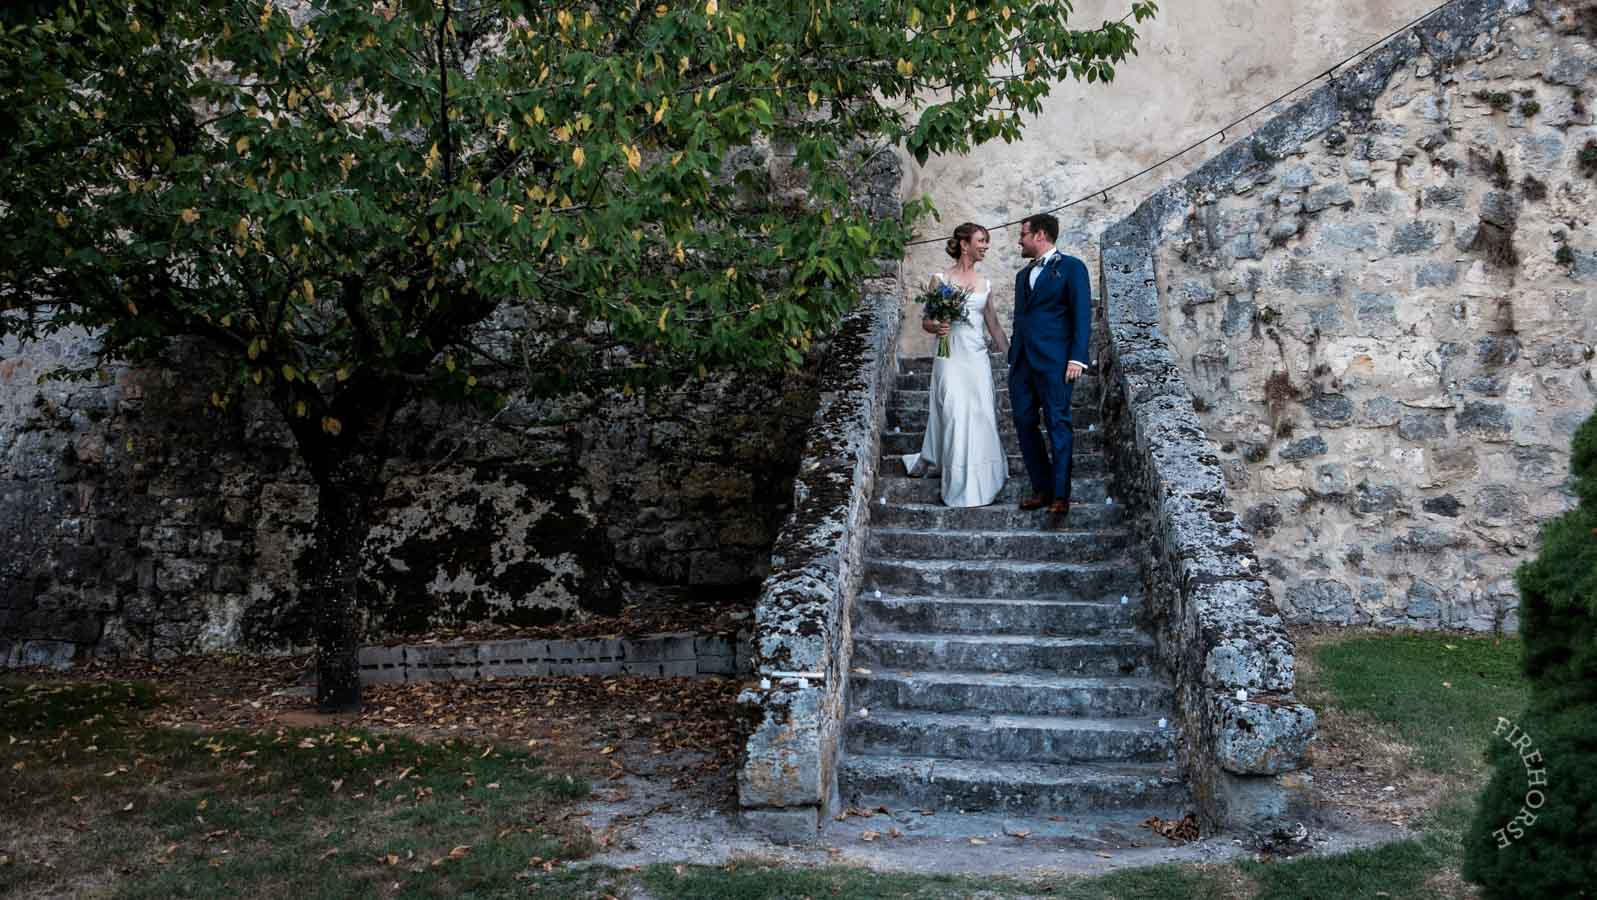 Lot-et-Garonne-Wedding-Photography-278